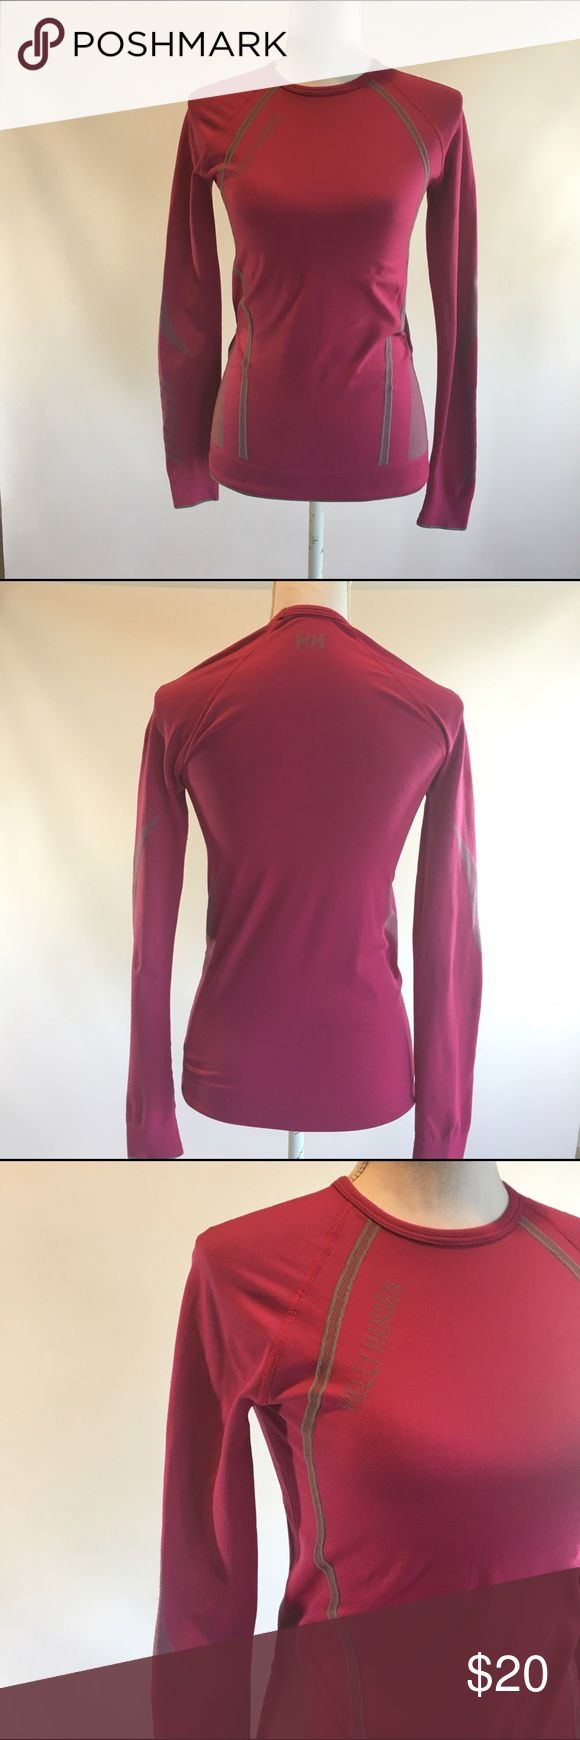 Helly Hansen Women's M Pink Base Layer Top Women's size medium.  Helly Hansen base layer.  In good condition with normal light wear Helly Hansen Tops Tees - Long Sleeve